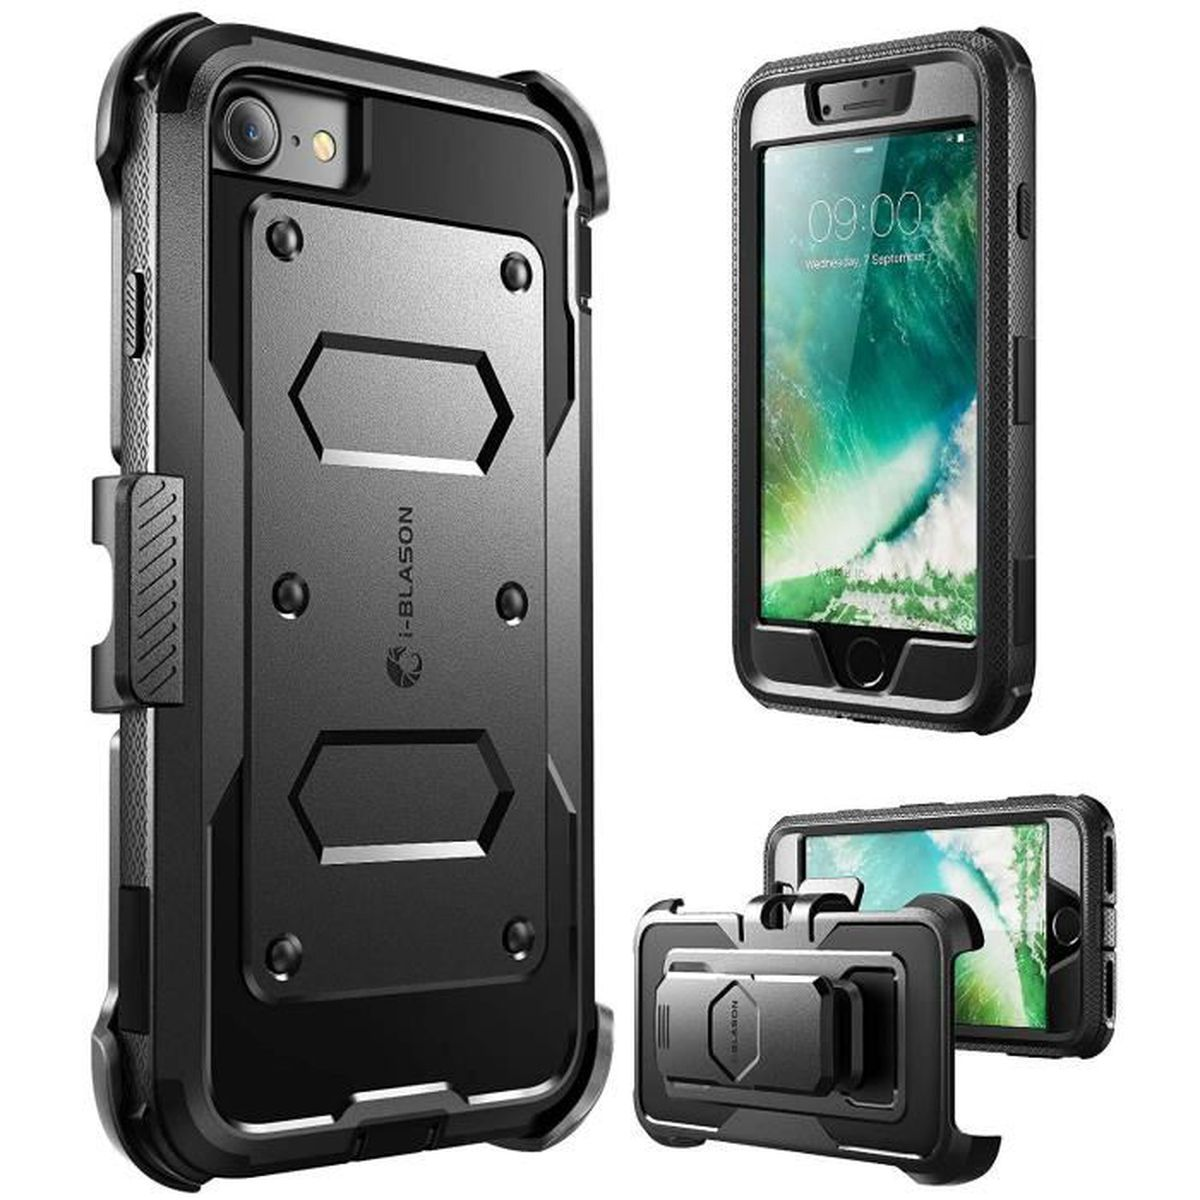 Coque housse de protection int grale i blason armorbox for Housse protection iphone 7